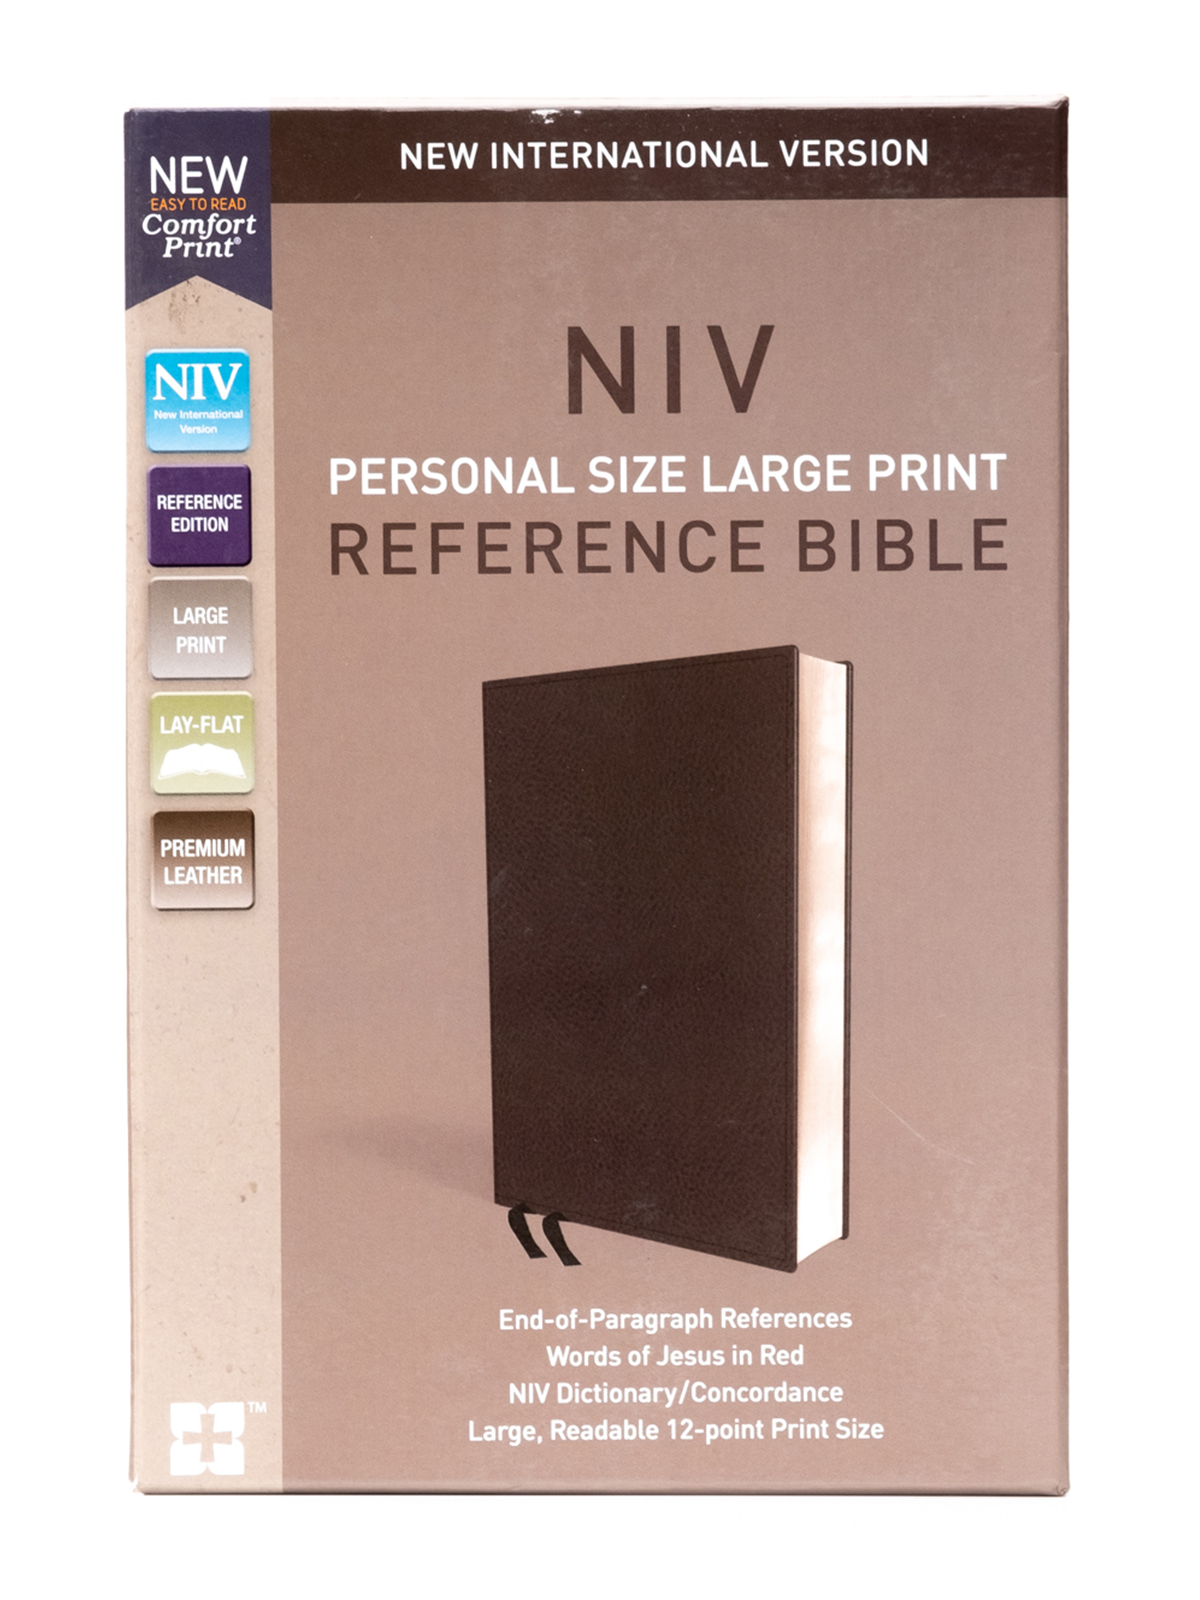 NIV Personal Reference Bible Front Cover